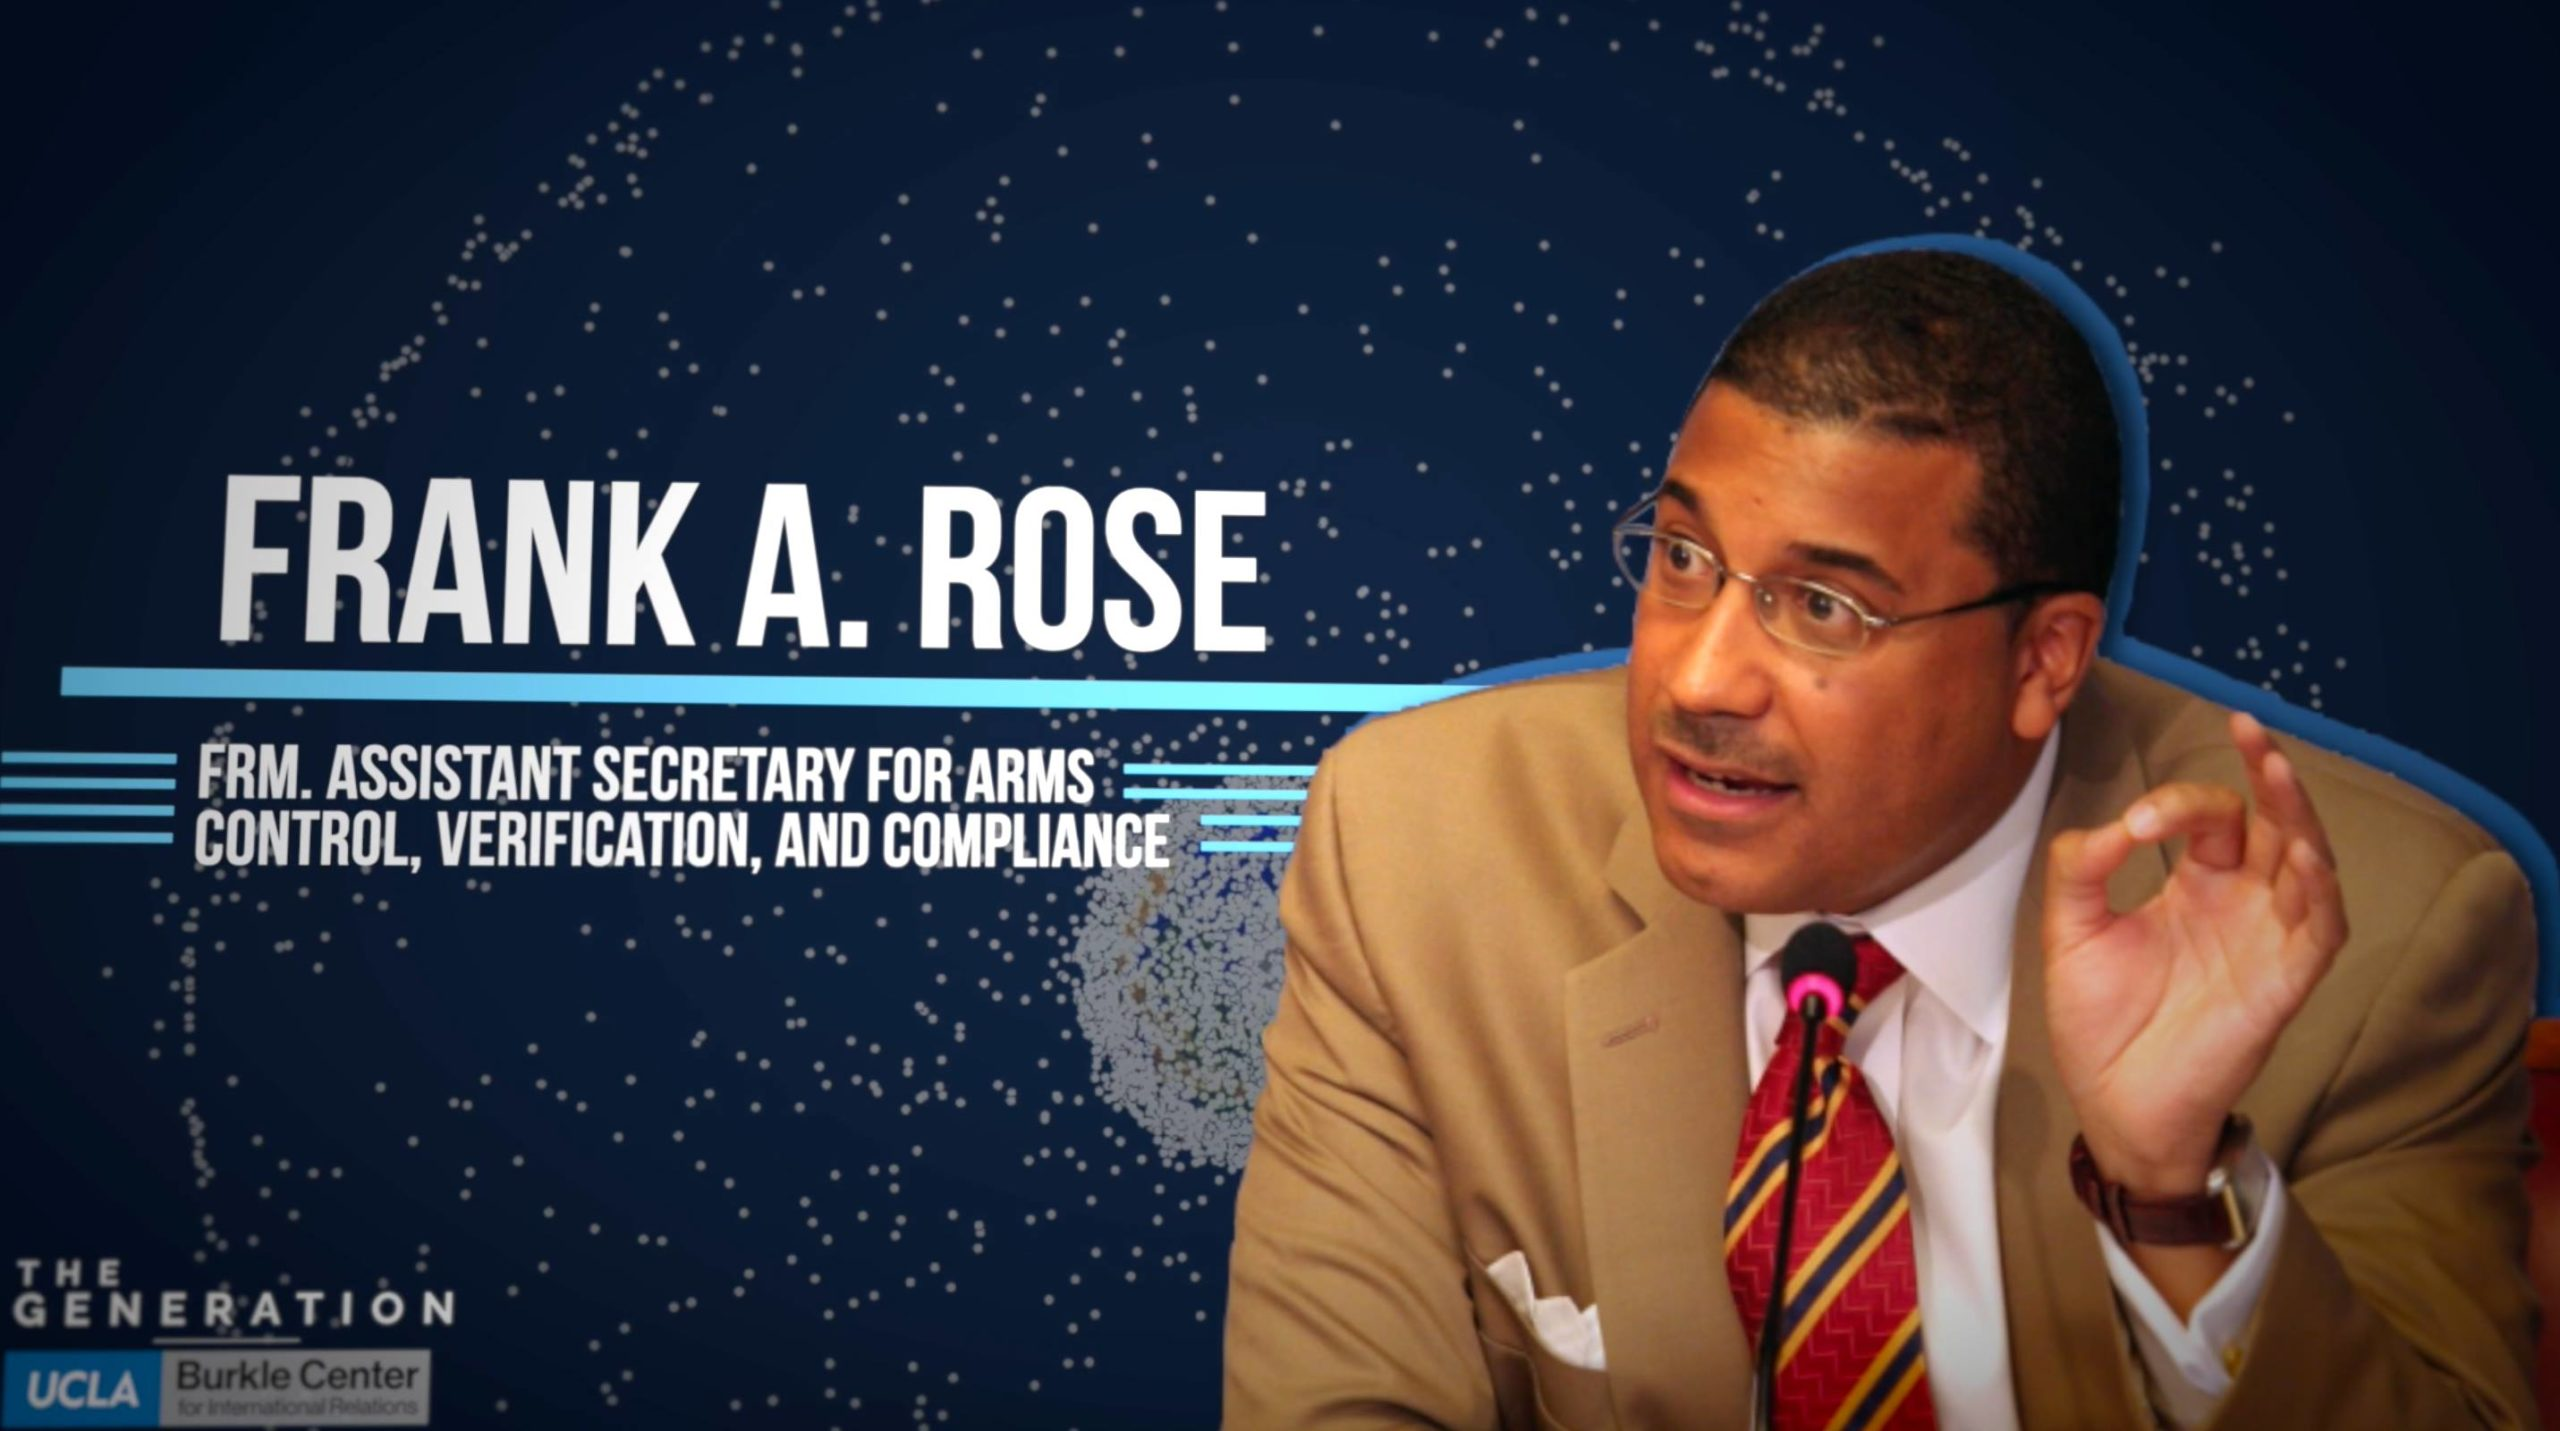 Interview with Former Assistant Secretary of State Frank A. Rose on the Militarization of Space